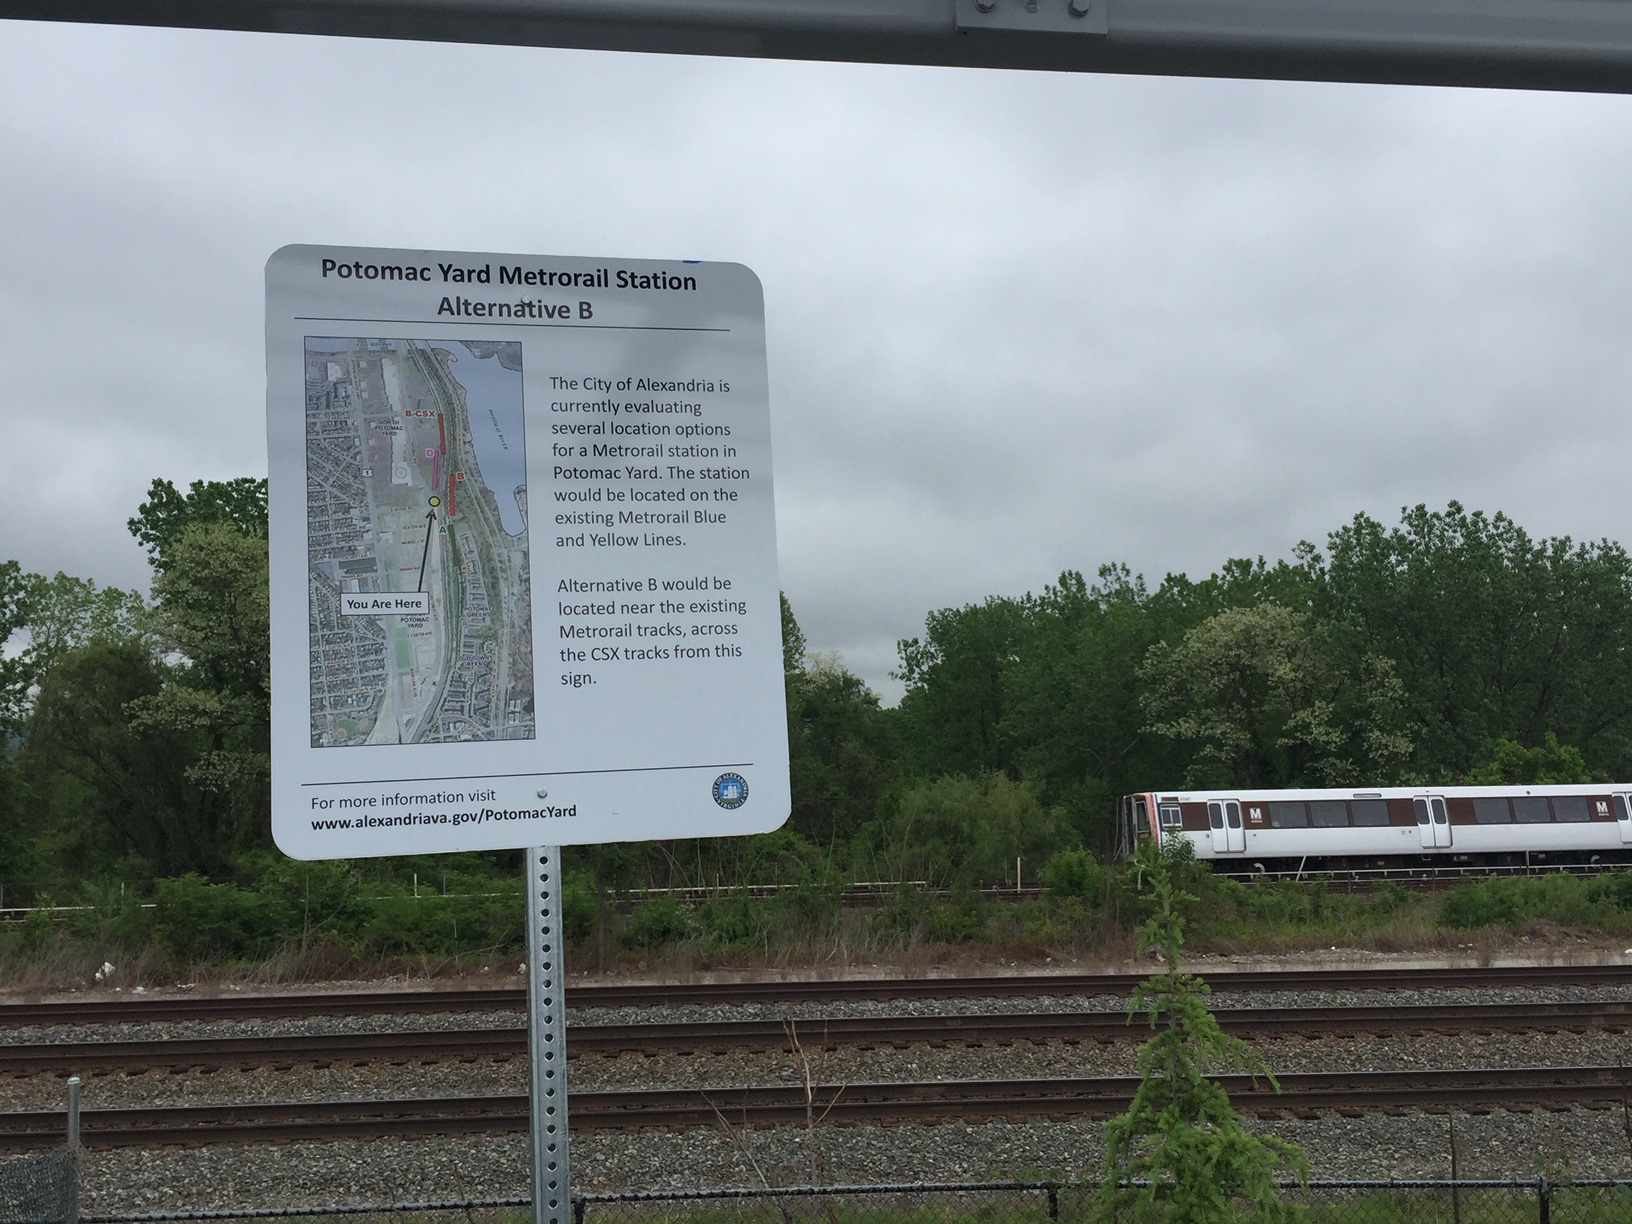 The United States Army Corps of Engineers (USACE) issued a Federal Public Notice on April 5, 2019, regarding the revised Joint Permit Application for the Potomac Yard Metrorail Station construction in Alexandria, Virginia.